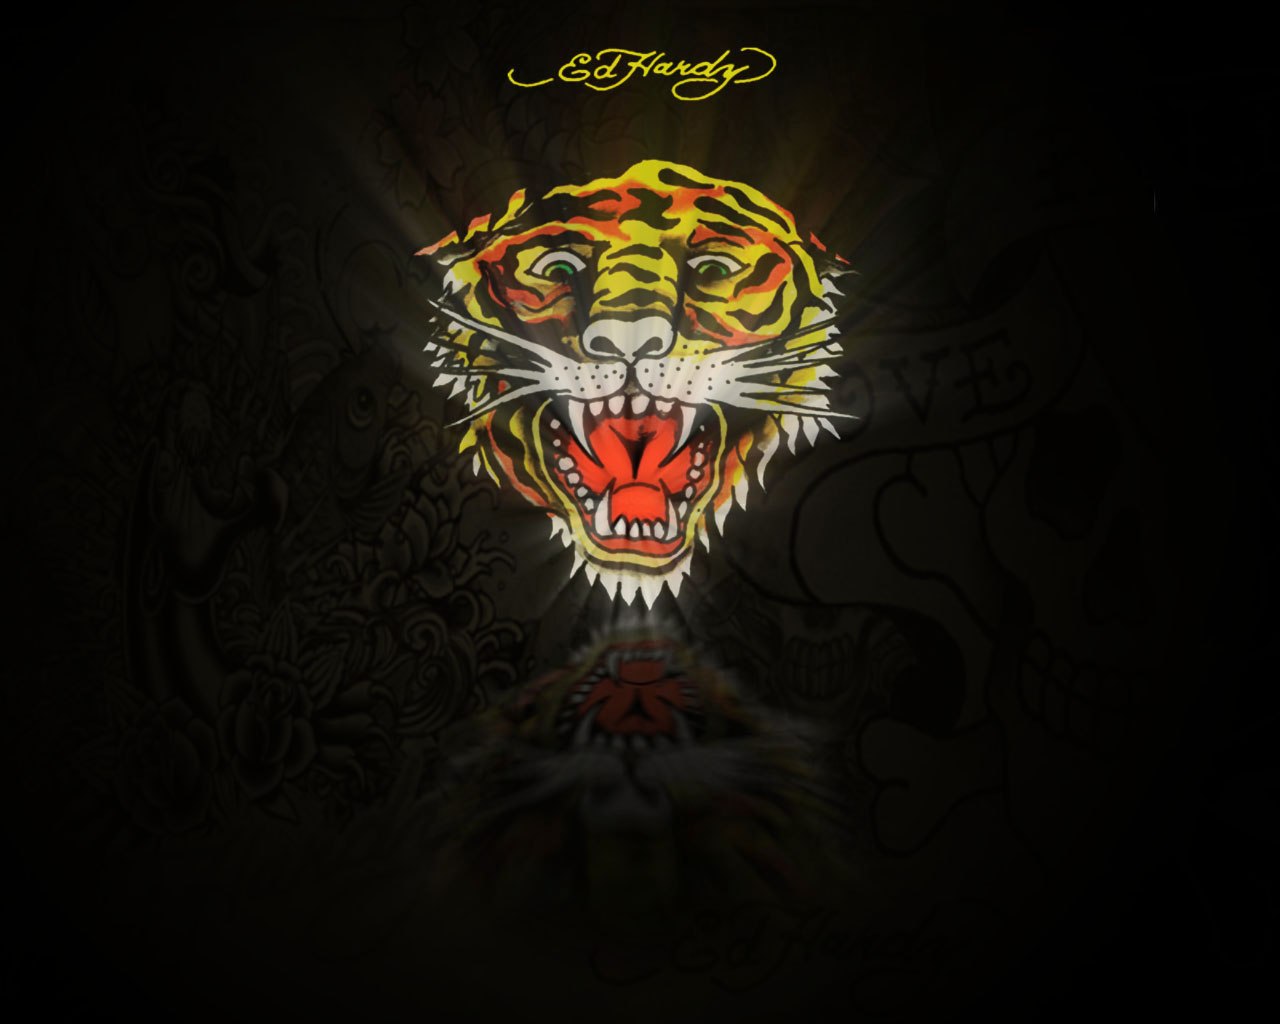 Ed Hardy Rose Wallpaper By